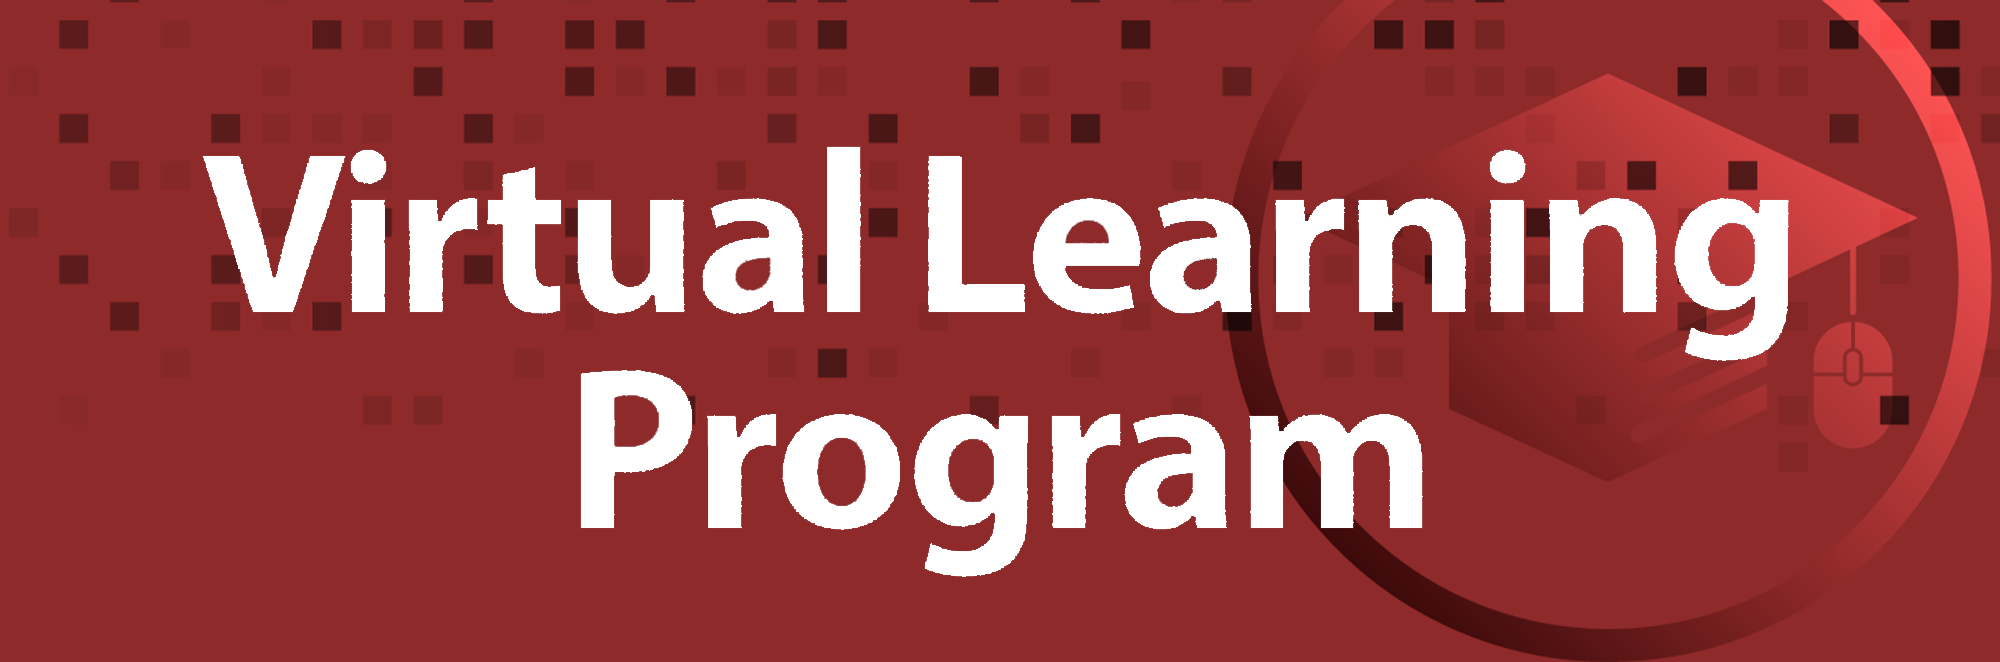 FBISD Virtual Learning Program